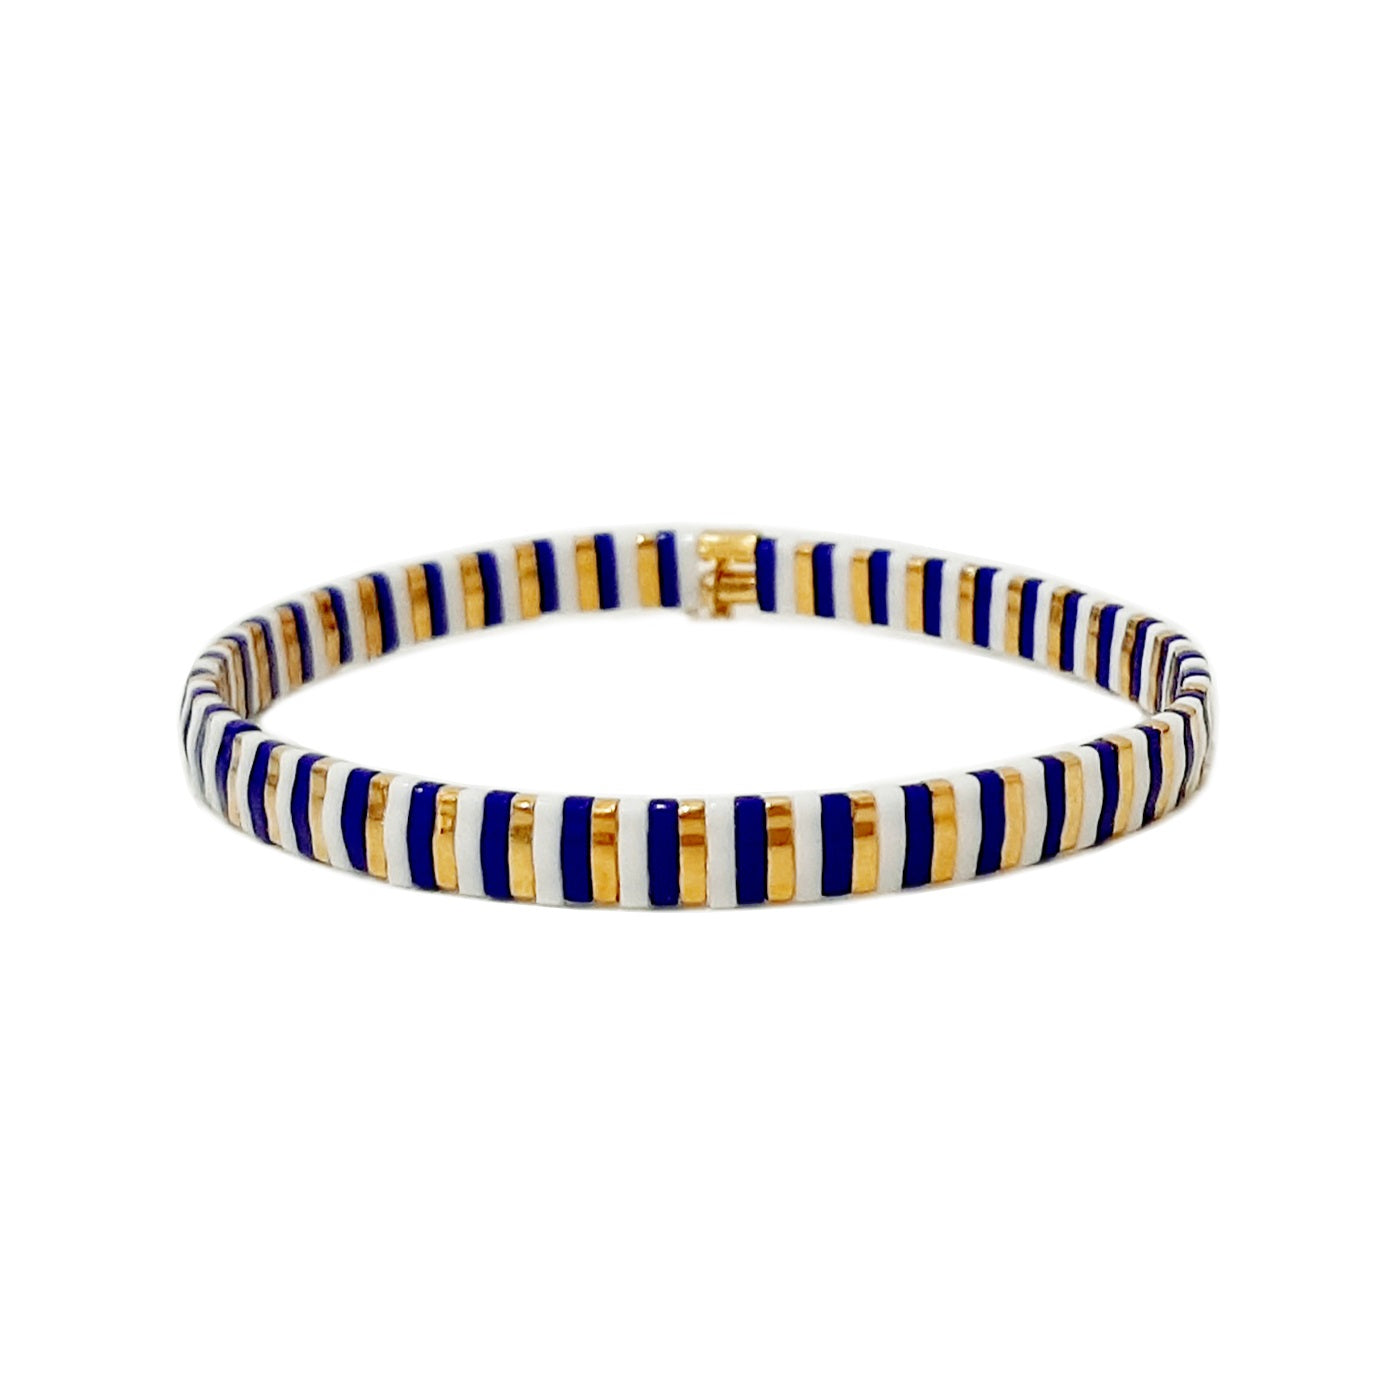 Handmade Tila Beaded Striped Stretch Bracelets